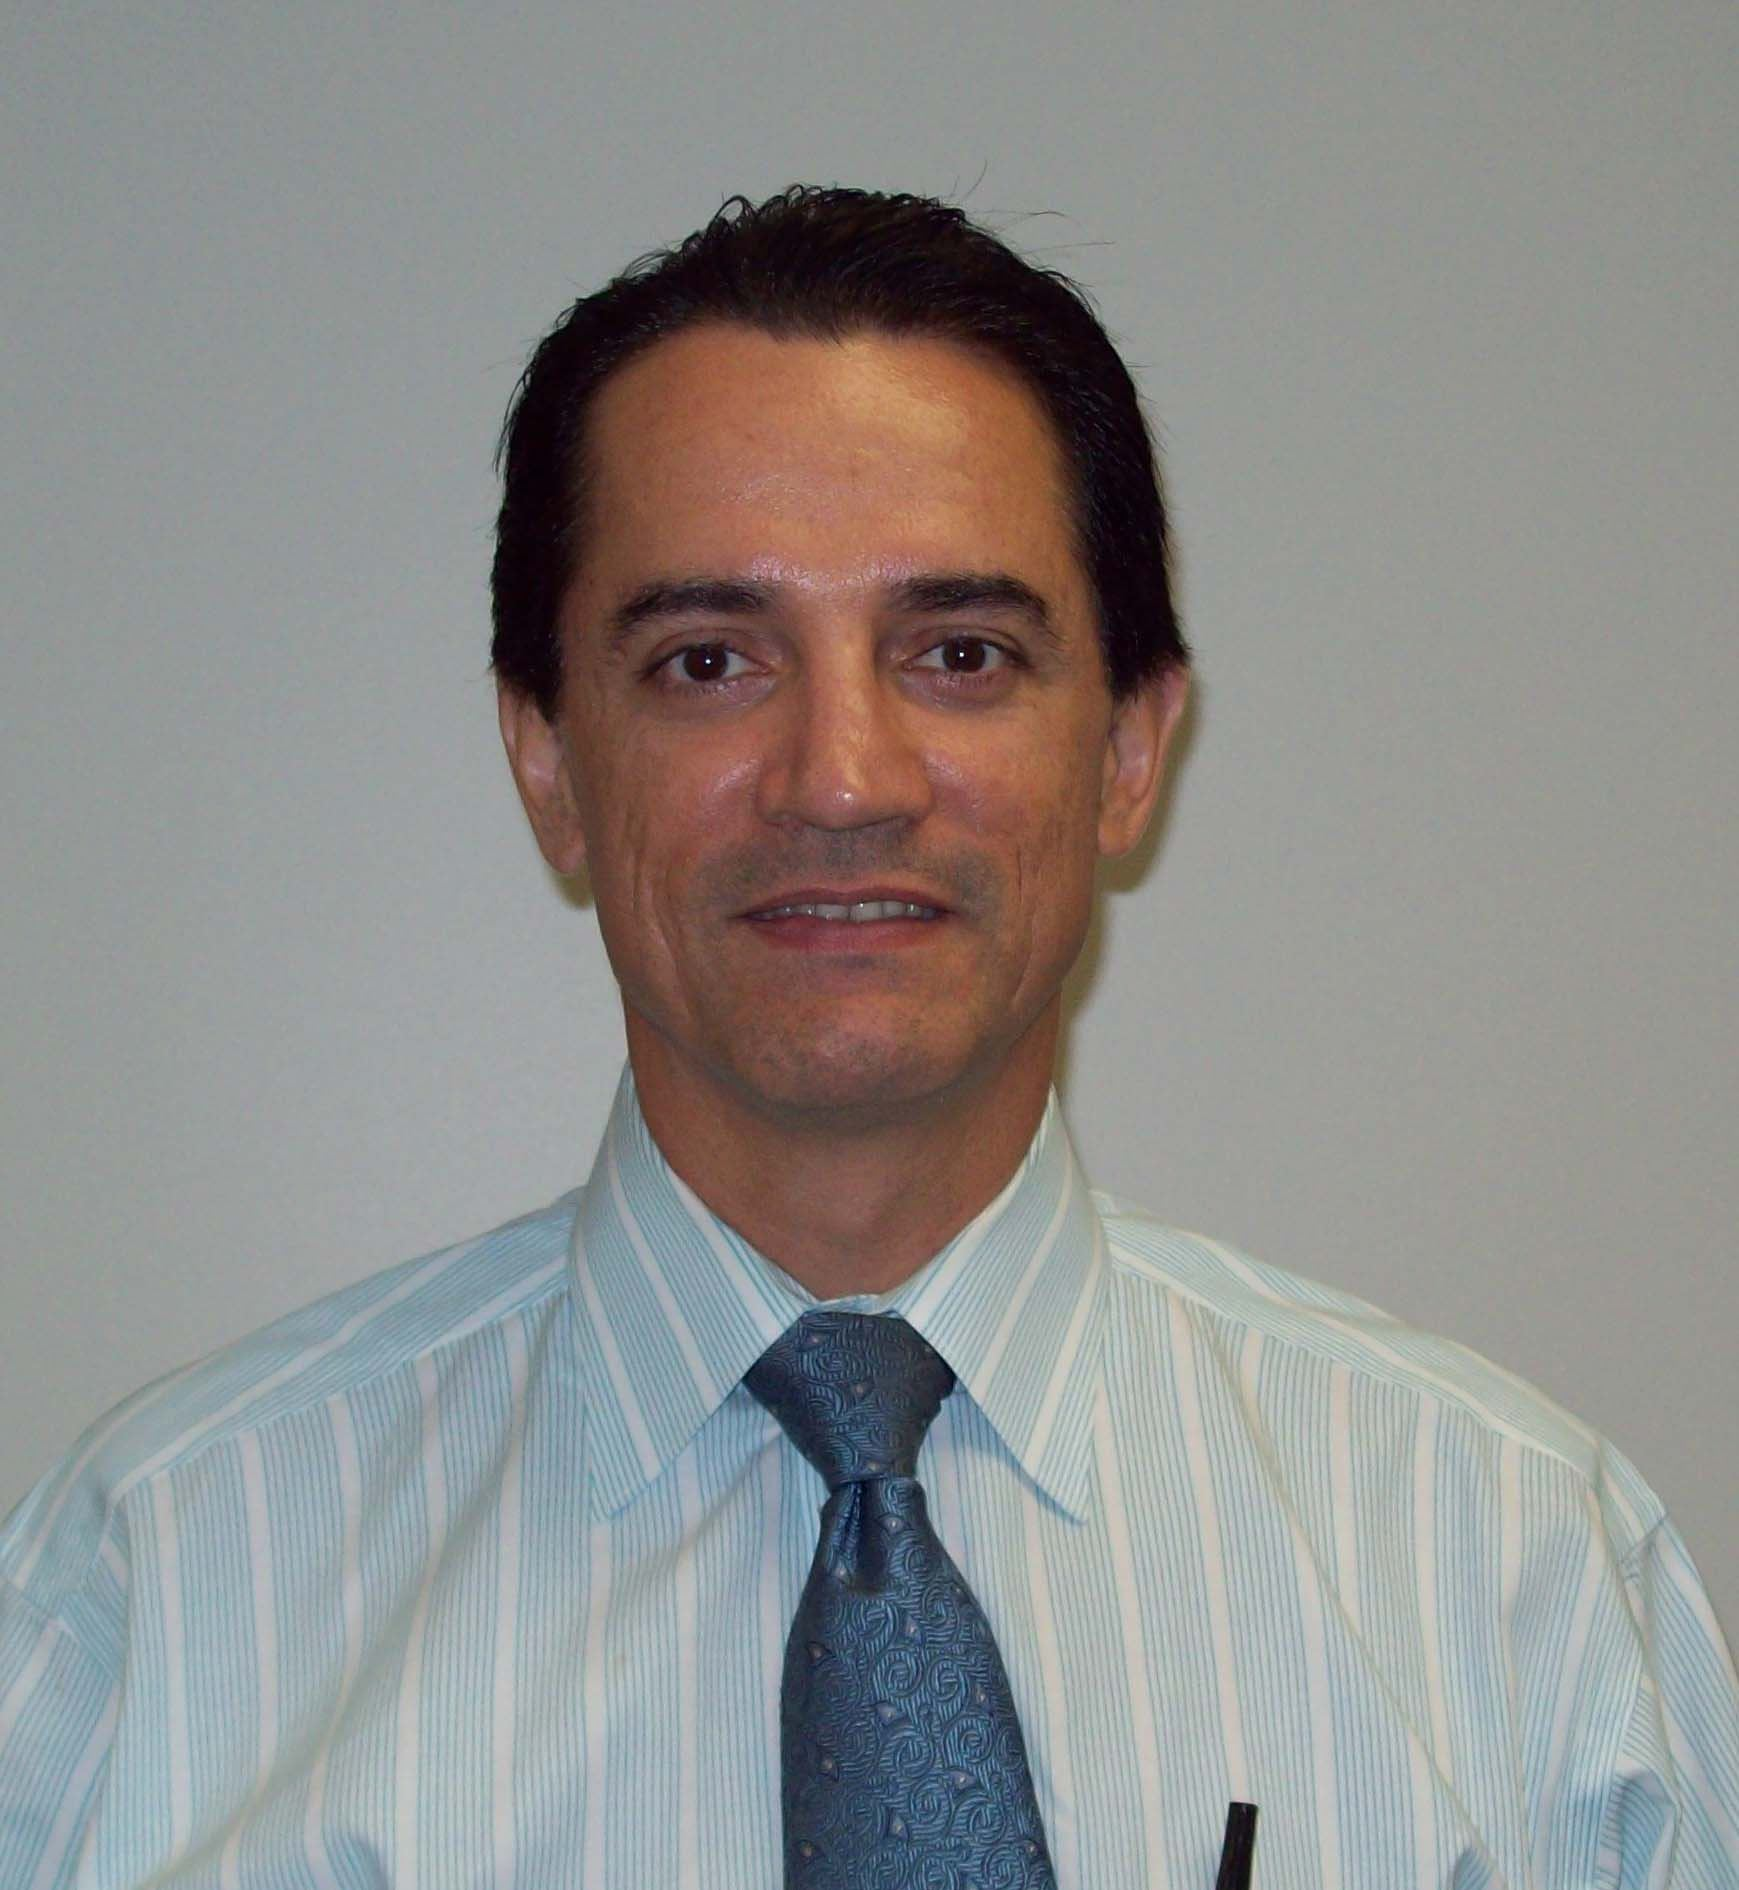 Guillermo D. Marquez MD